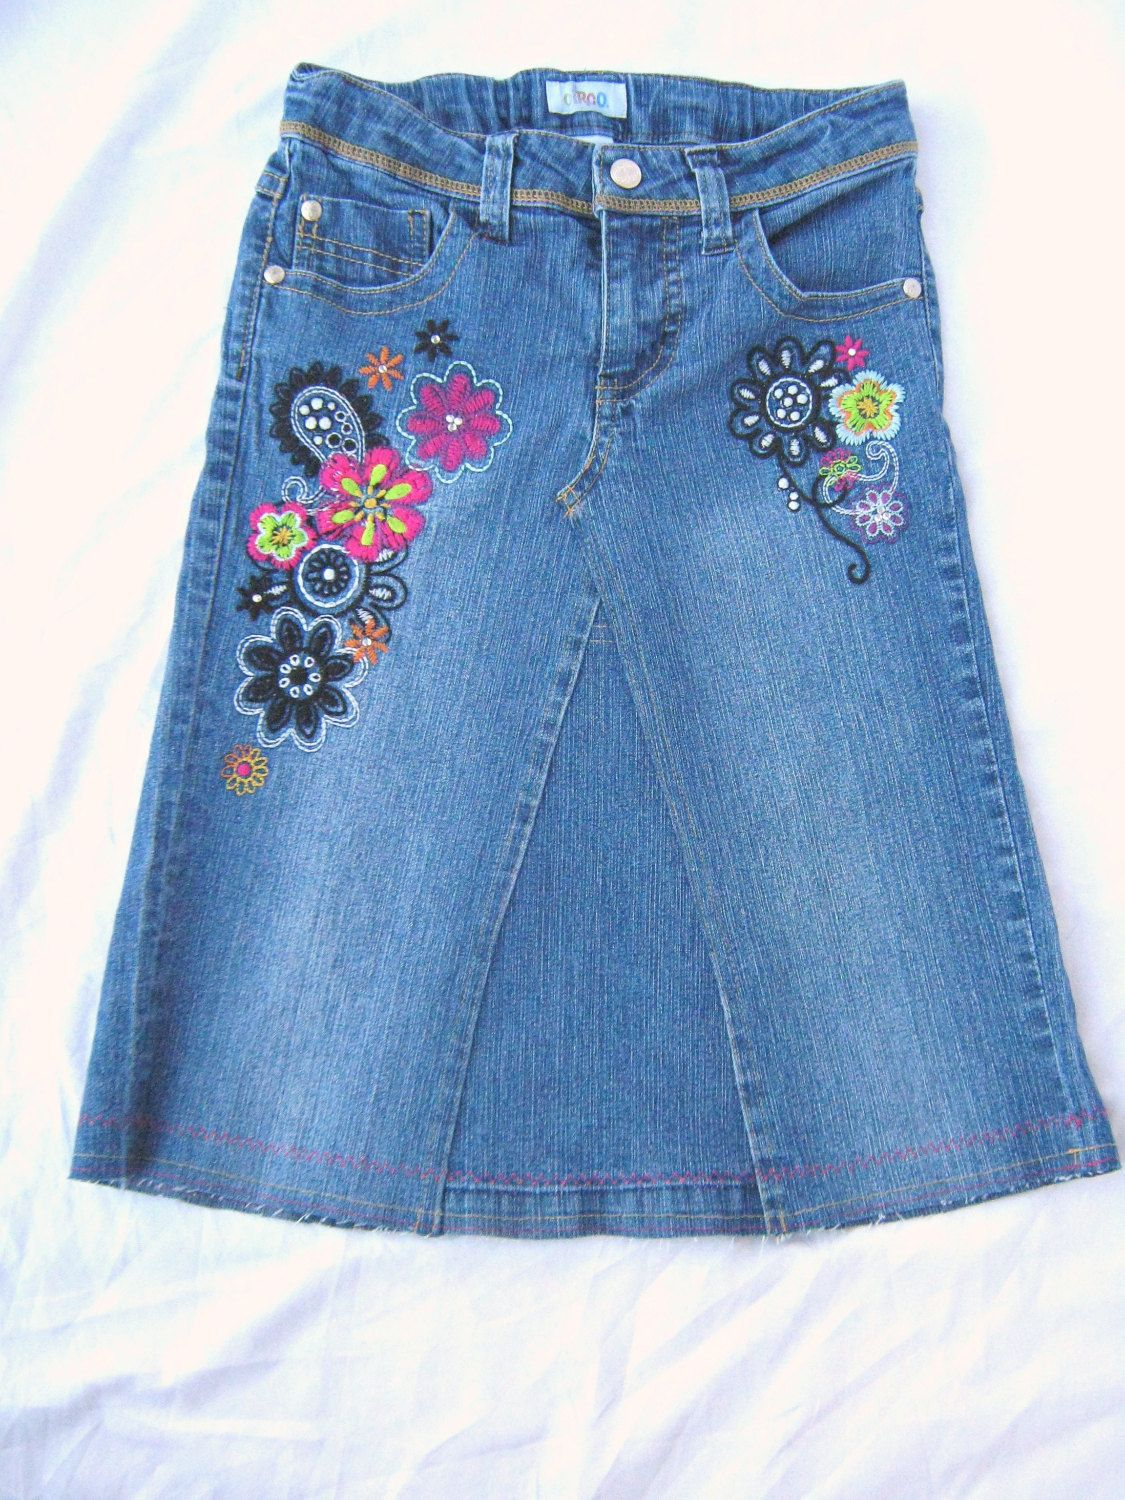 a67c31813 Upcycled Girls Denim Skirt with Embroidered Multicolored Flowers, Made from  Jeans, Size 8. $22.00, via Etsy. Inspiration for my Little Miss.